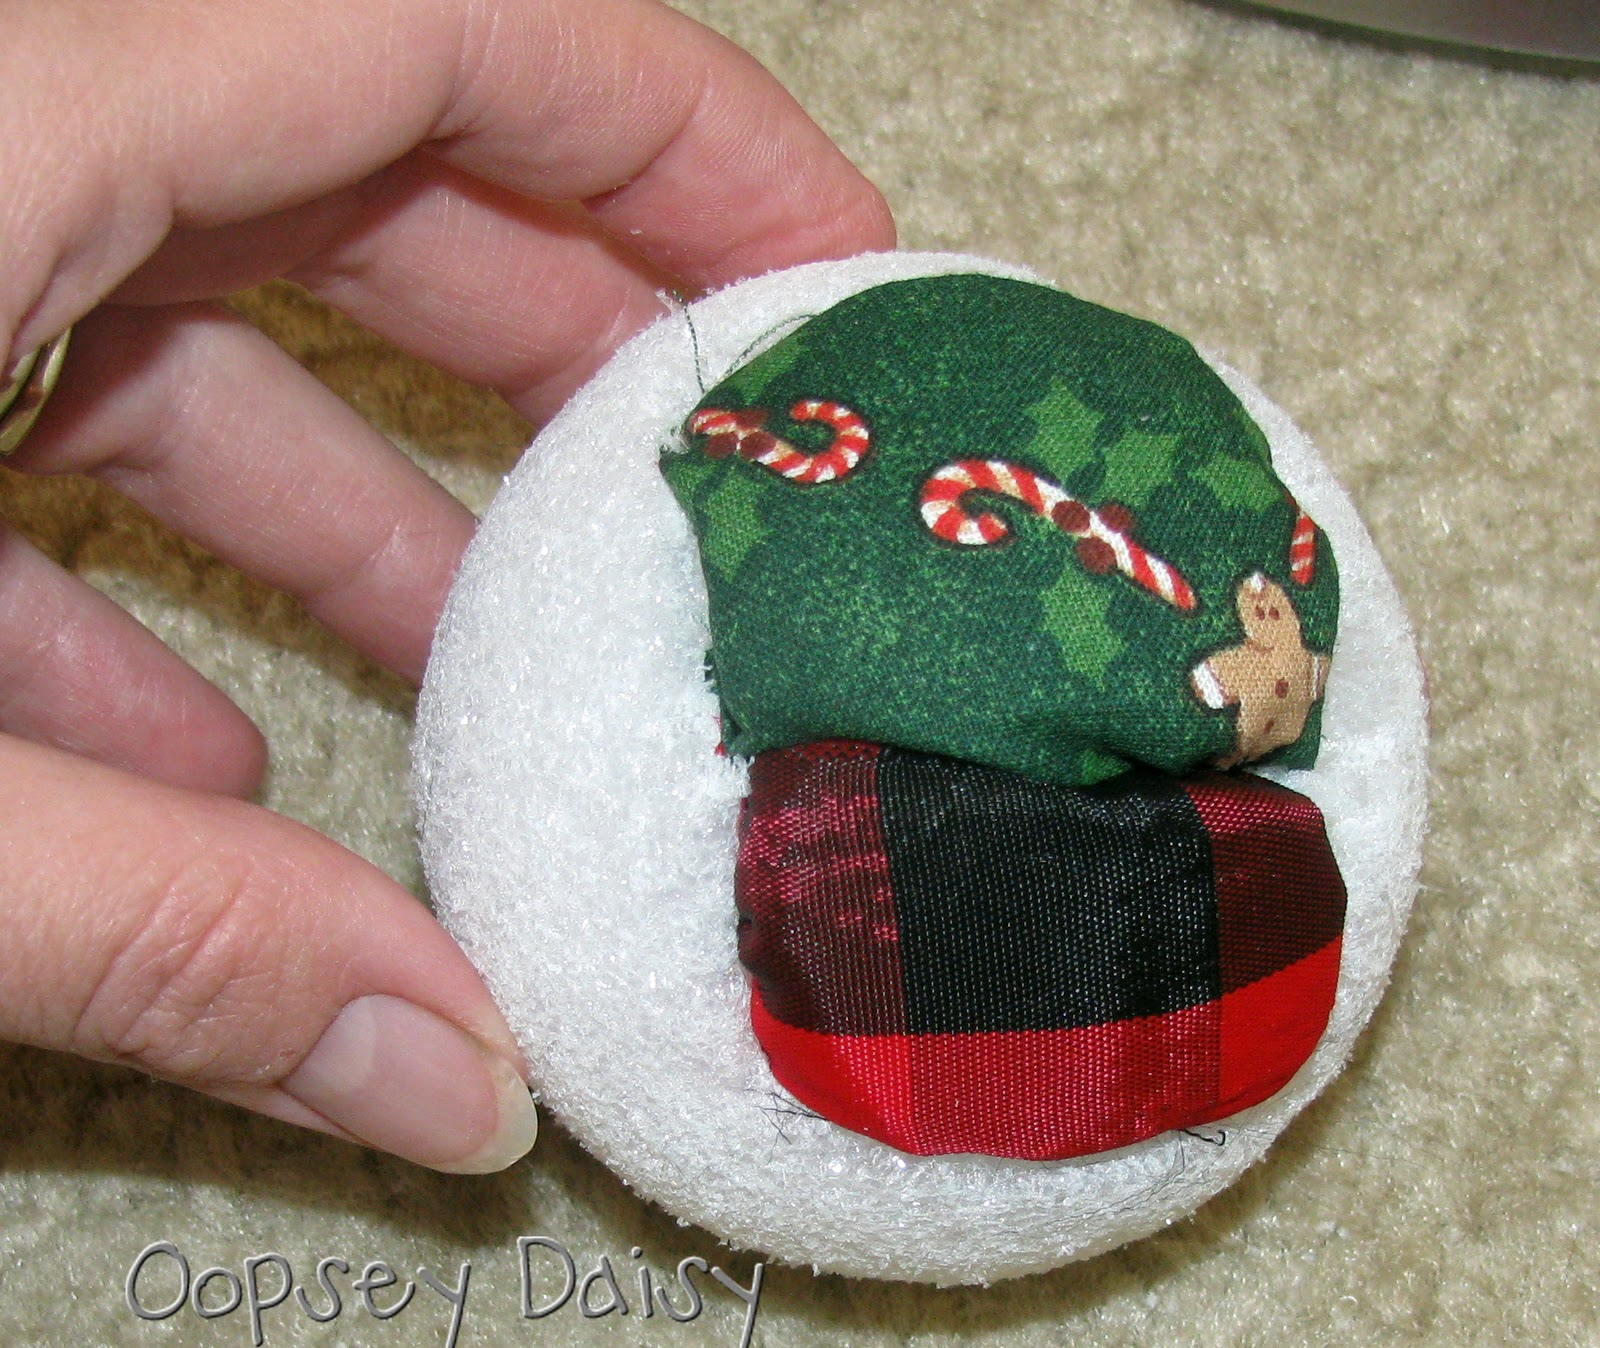 Styrofoam christmas ornaments - Begin By Taking Your First Fabric Scrap And Placing It On The Styrofoam Ball Use A Butter Knife To Push The Edges Of The Fabric Into The Styrofoam Ball